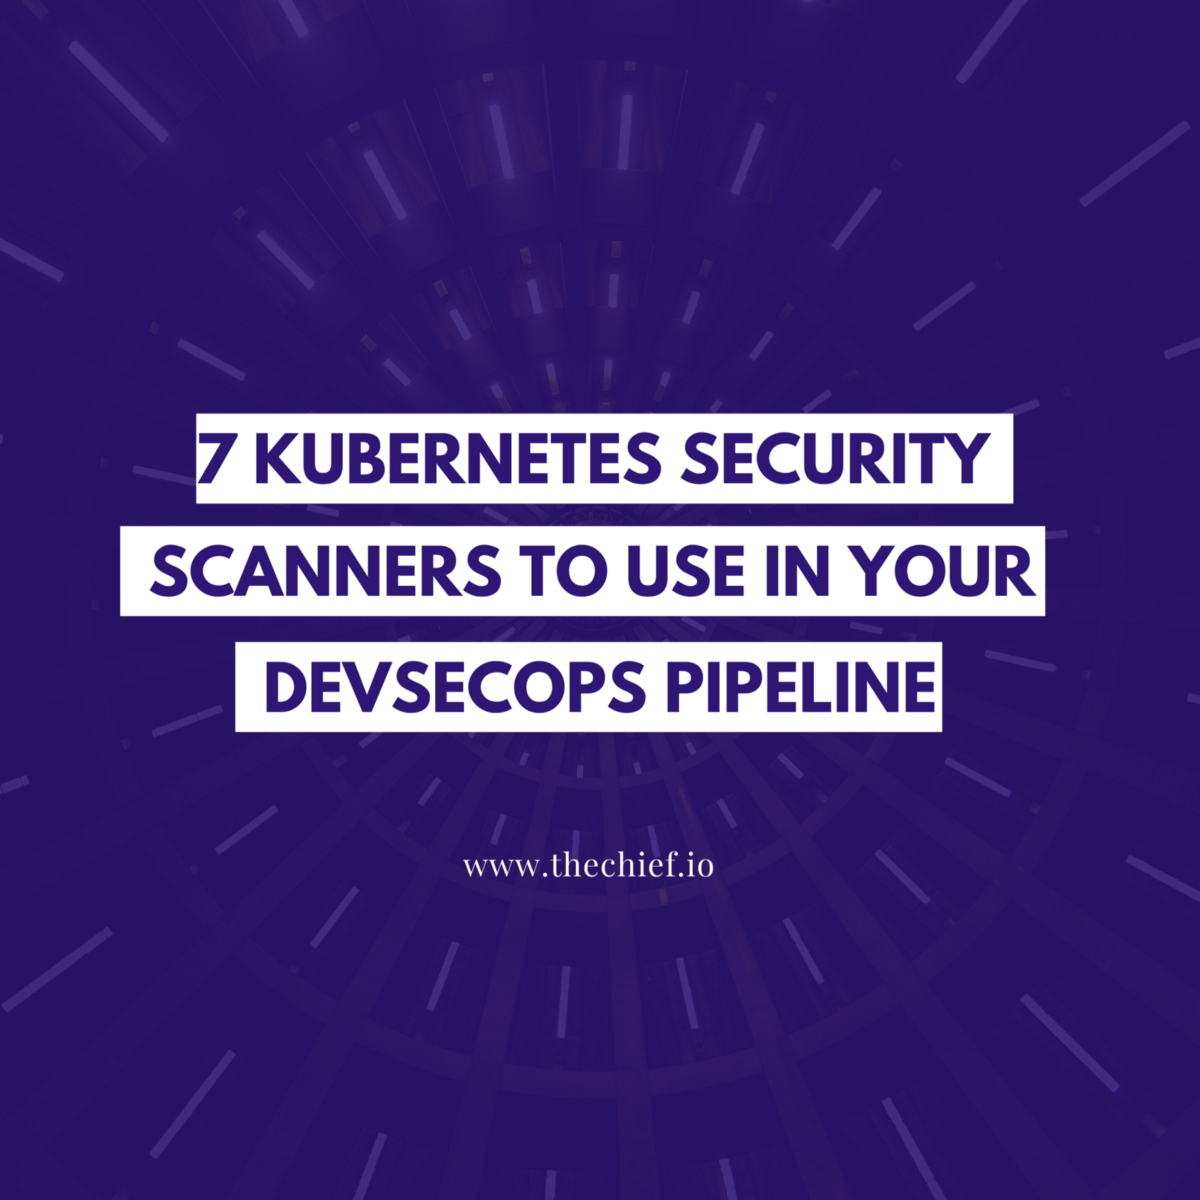 7 Kubernetes Security Scanners to Use in Your DevSecOps Pipeline